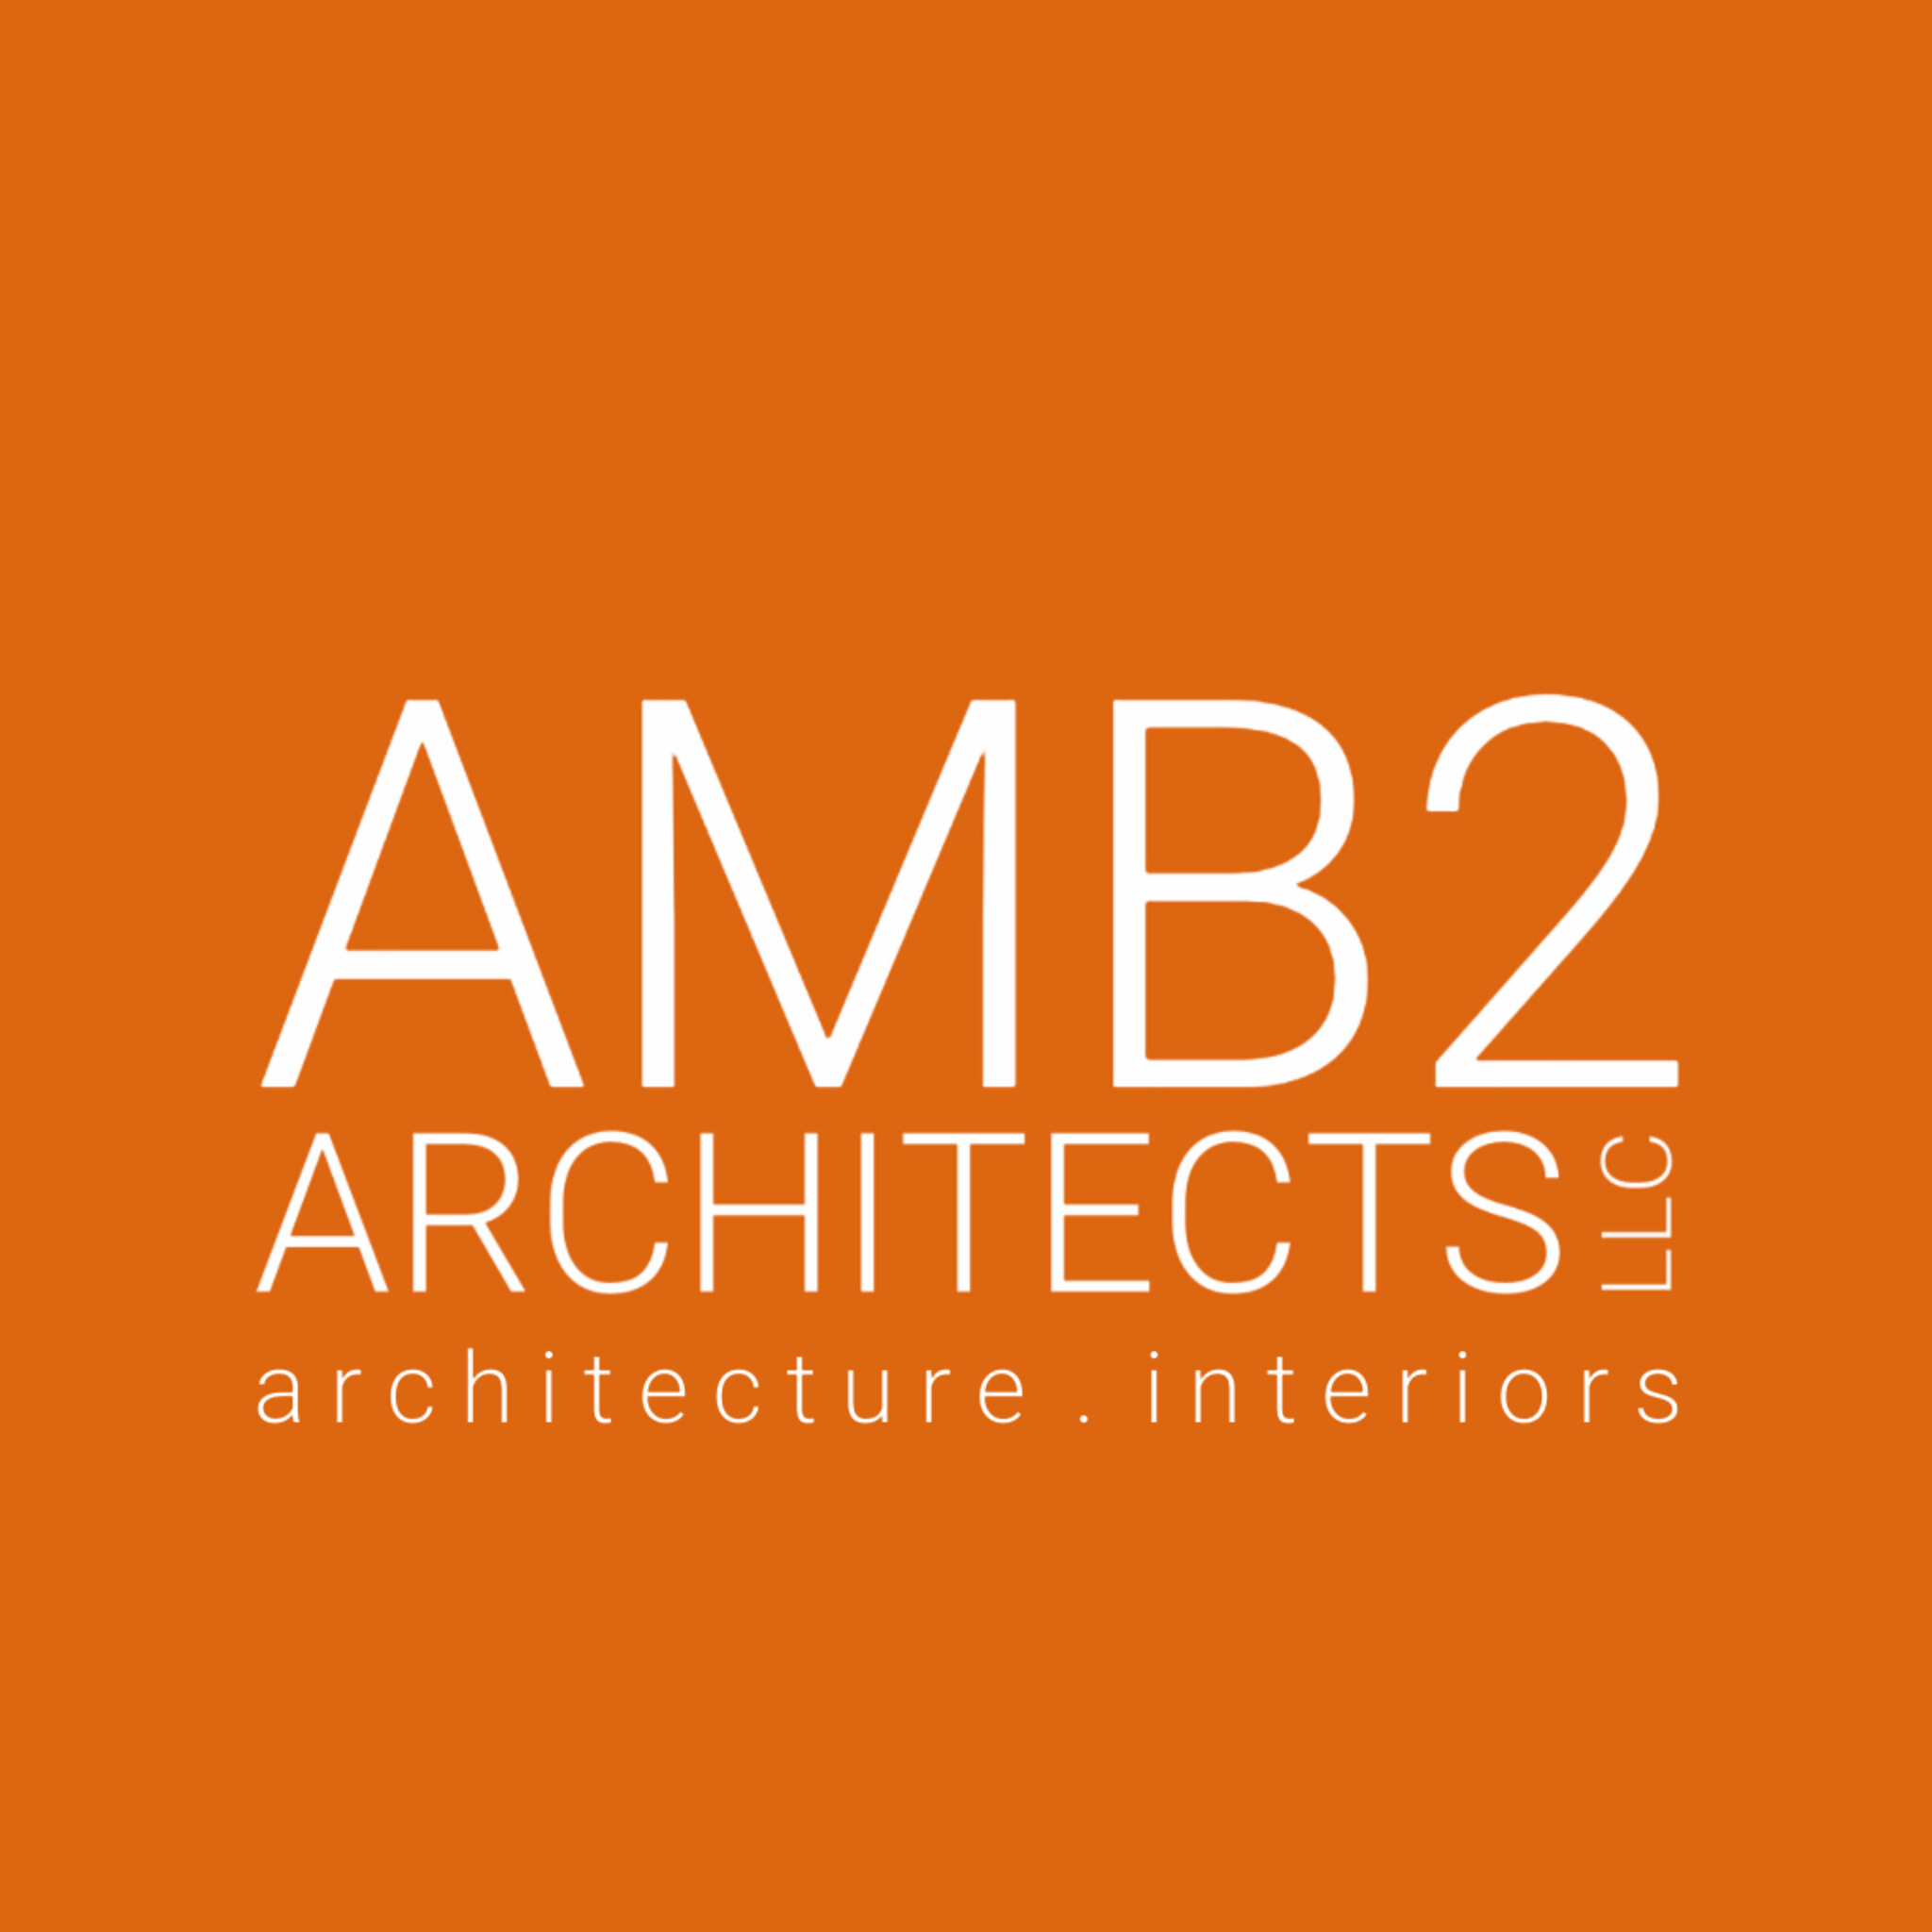 AMB2 ARCHITECTS, LLC